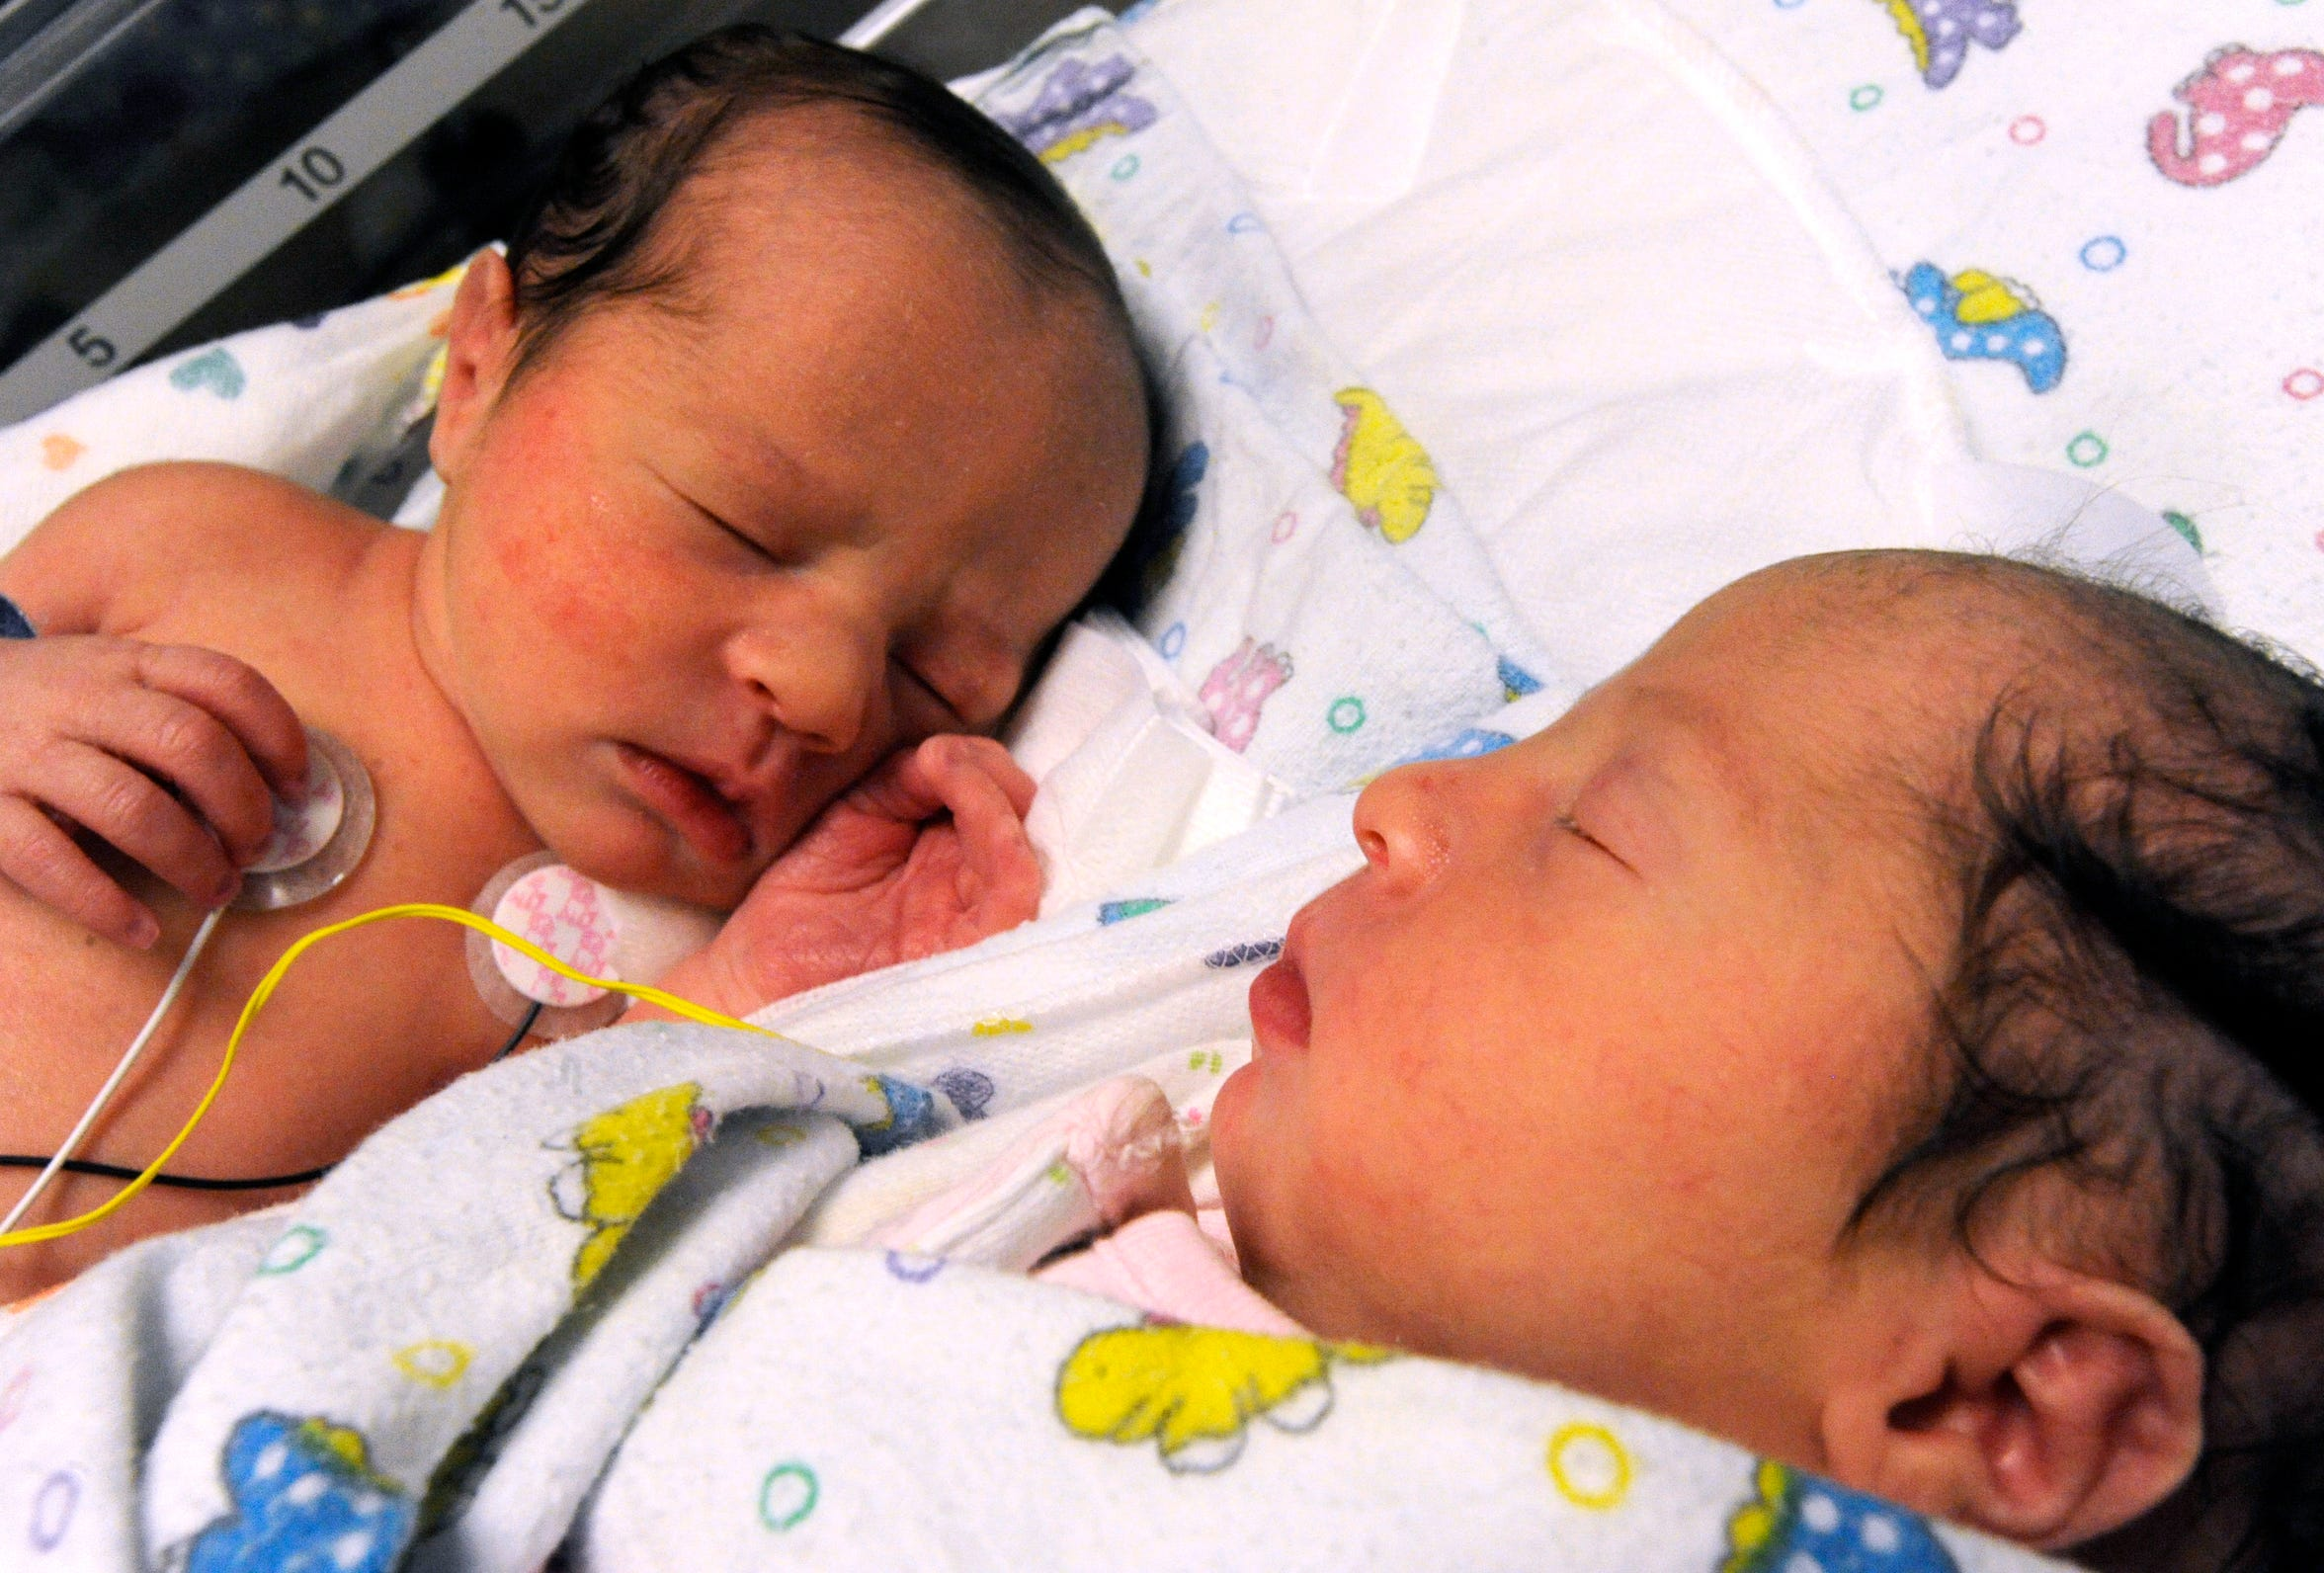 Nurses at Abilene Regional Medical Center had jokingly described identical twins Danielle Lyn Reed (left) and Hannah Grace Reed as being born a year apart. Hannah was born at 11:59:30 on Dec. 31, 2013, while her sister Danielle came into the world at 12:00:40, Jan. 1, 2014.